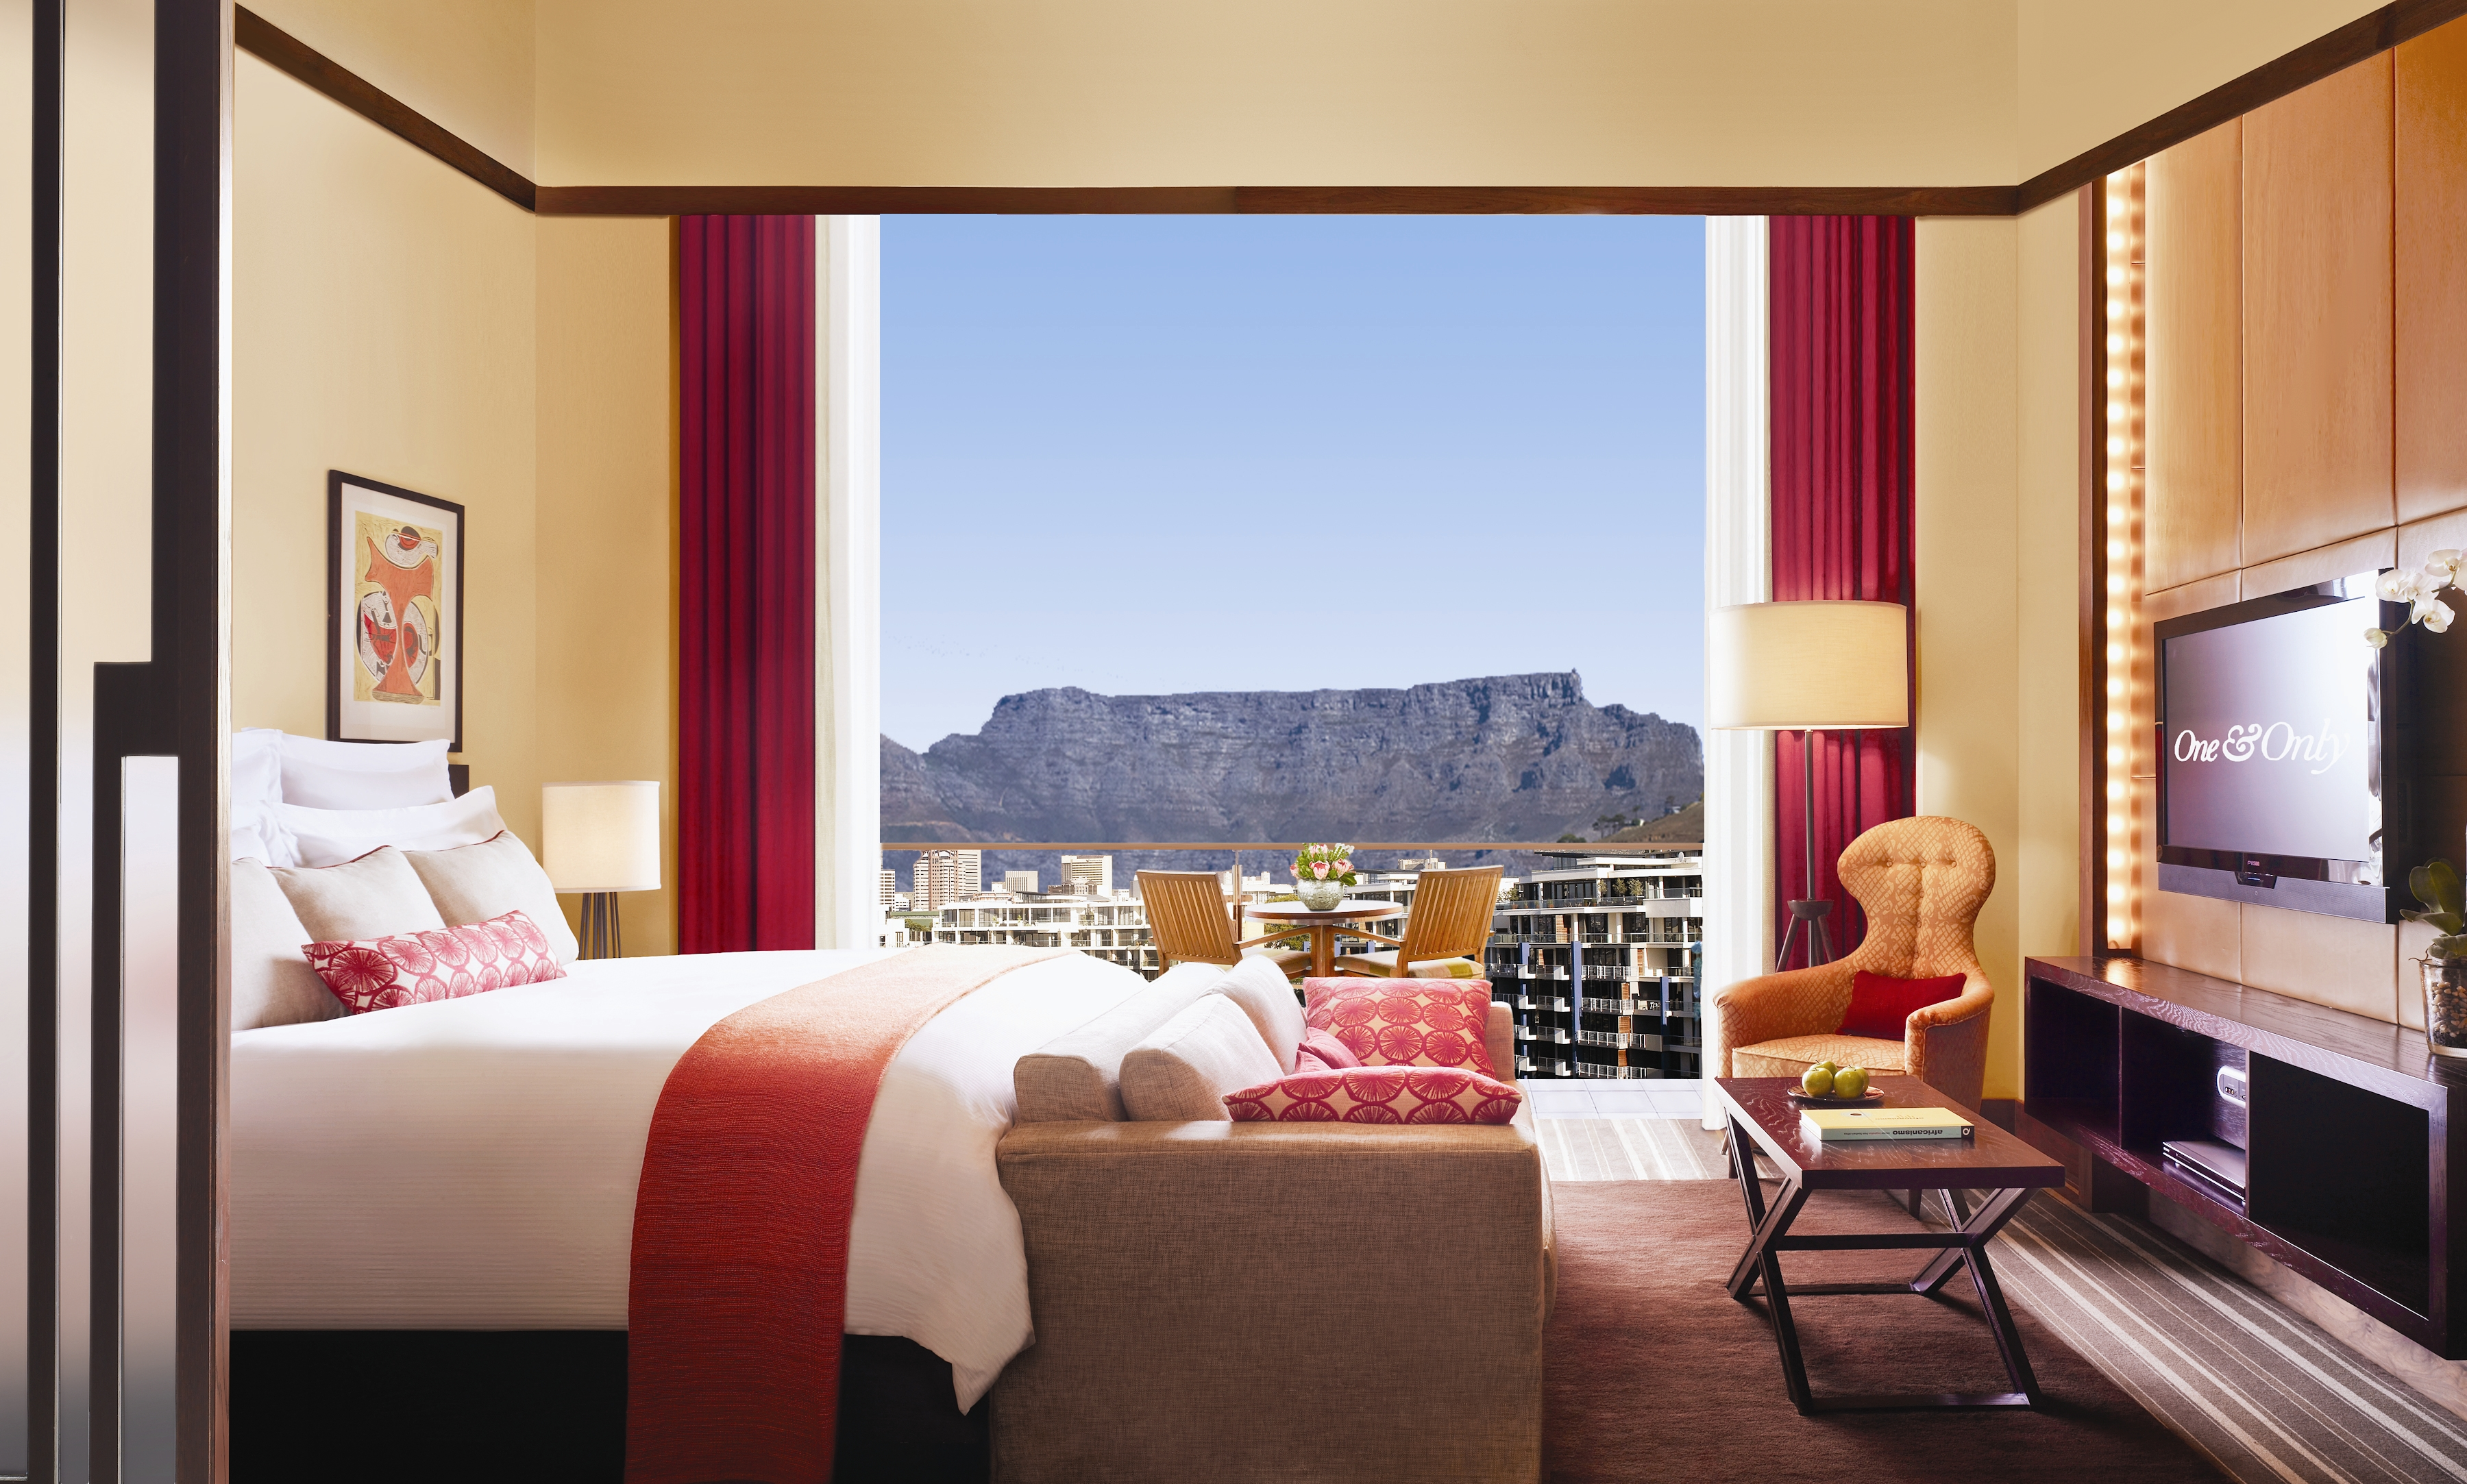 Interior Decorating Courses Cape Town Oneonly Cape Town